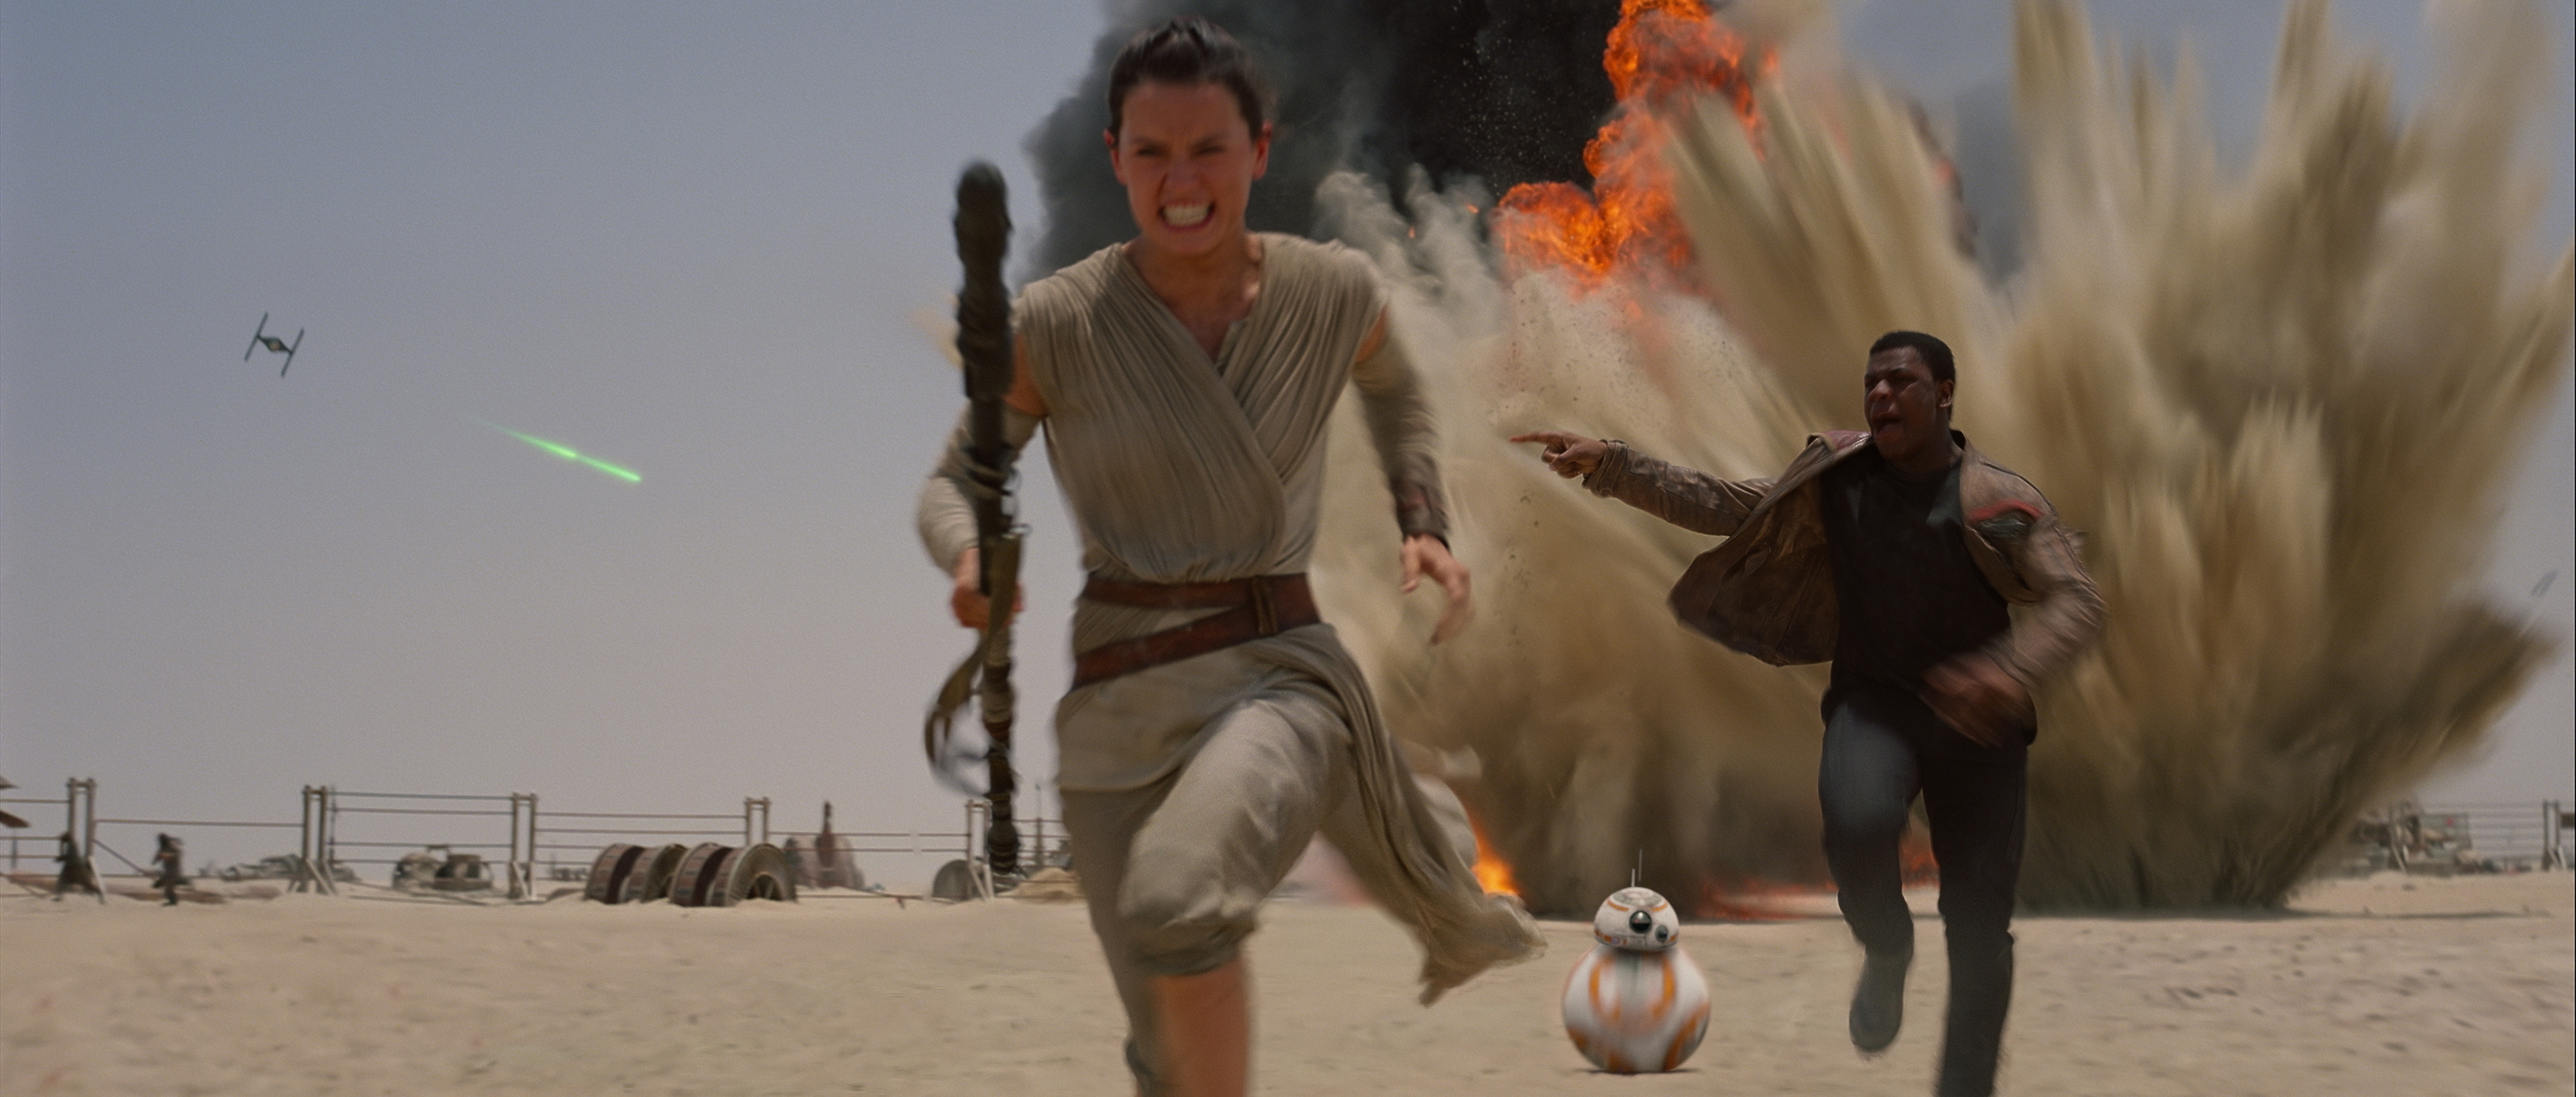 Daisy Ridley as Rey, Joh Boyega as Finn, and BB-8 on the running  from TIE fighters.